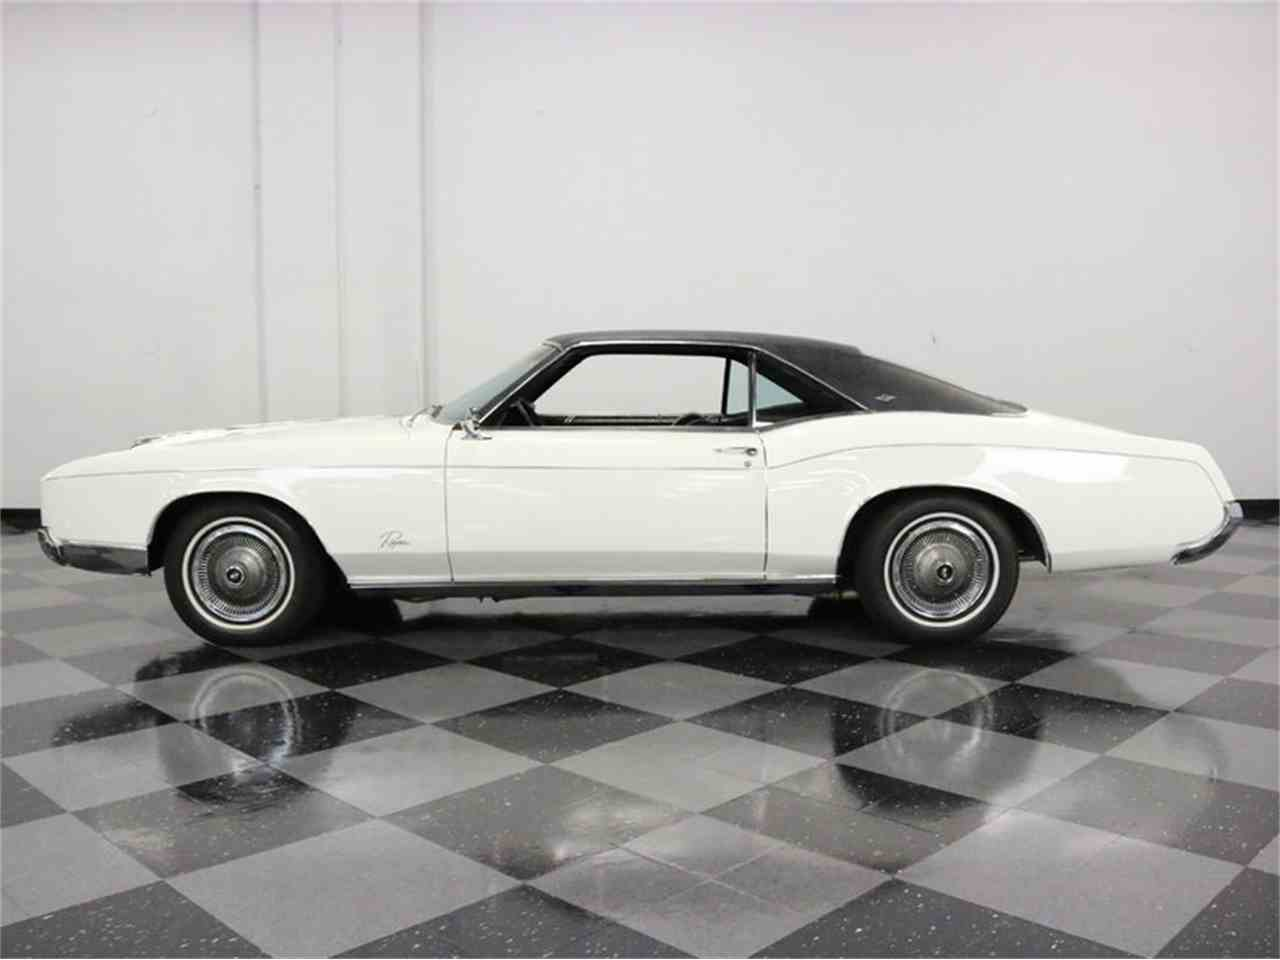 Large Picture of Classic '67 Buick Riviera located in Texas - $20,995.00 Offered by Streetside Classics - Dallas / Fort Worth - M5N7